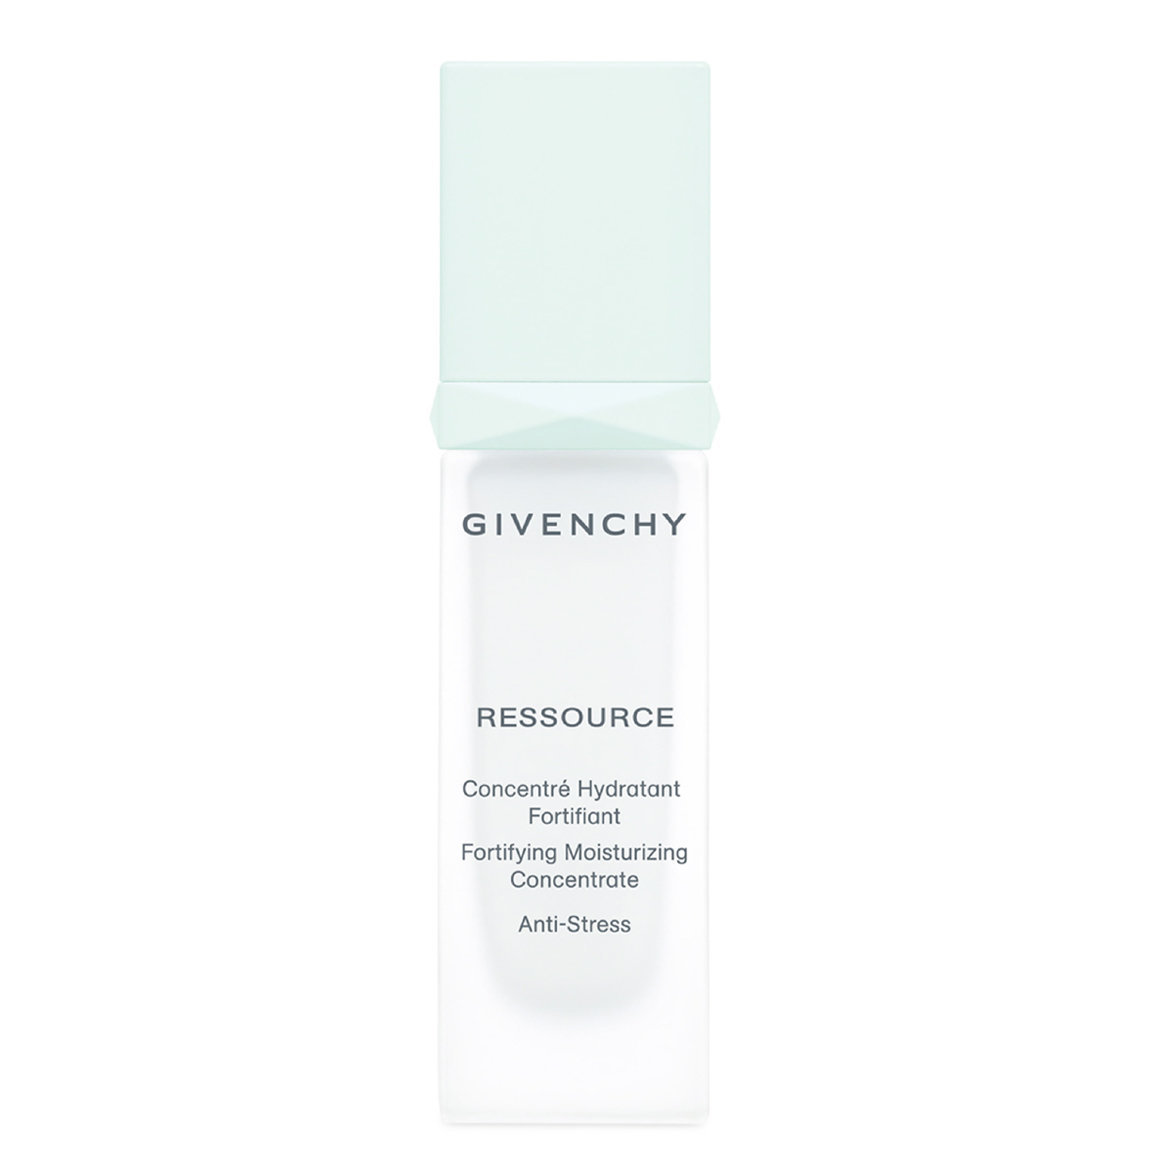 Givenchy Ressource Fortifying Moisturizing Concentrate Anti-Stress alternative view 1 - product swatch.